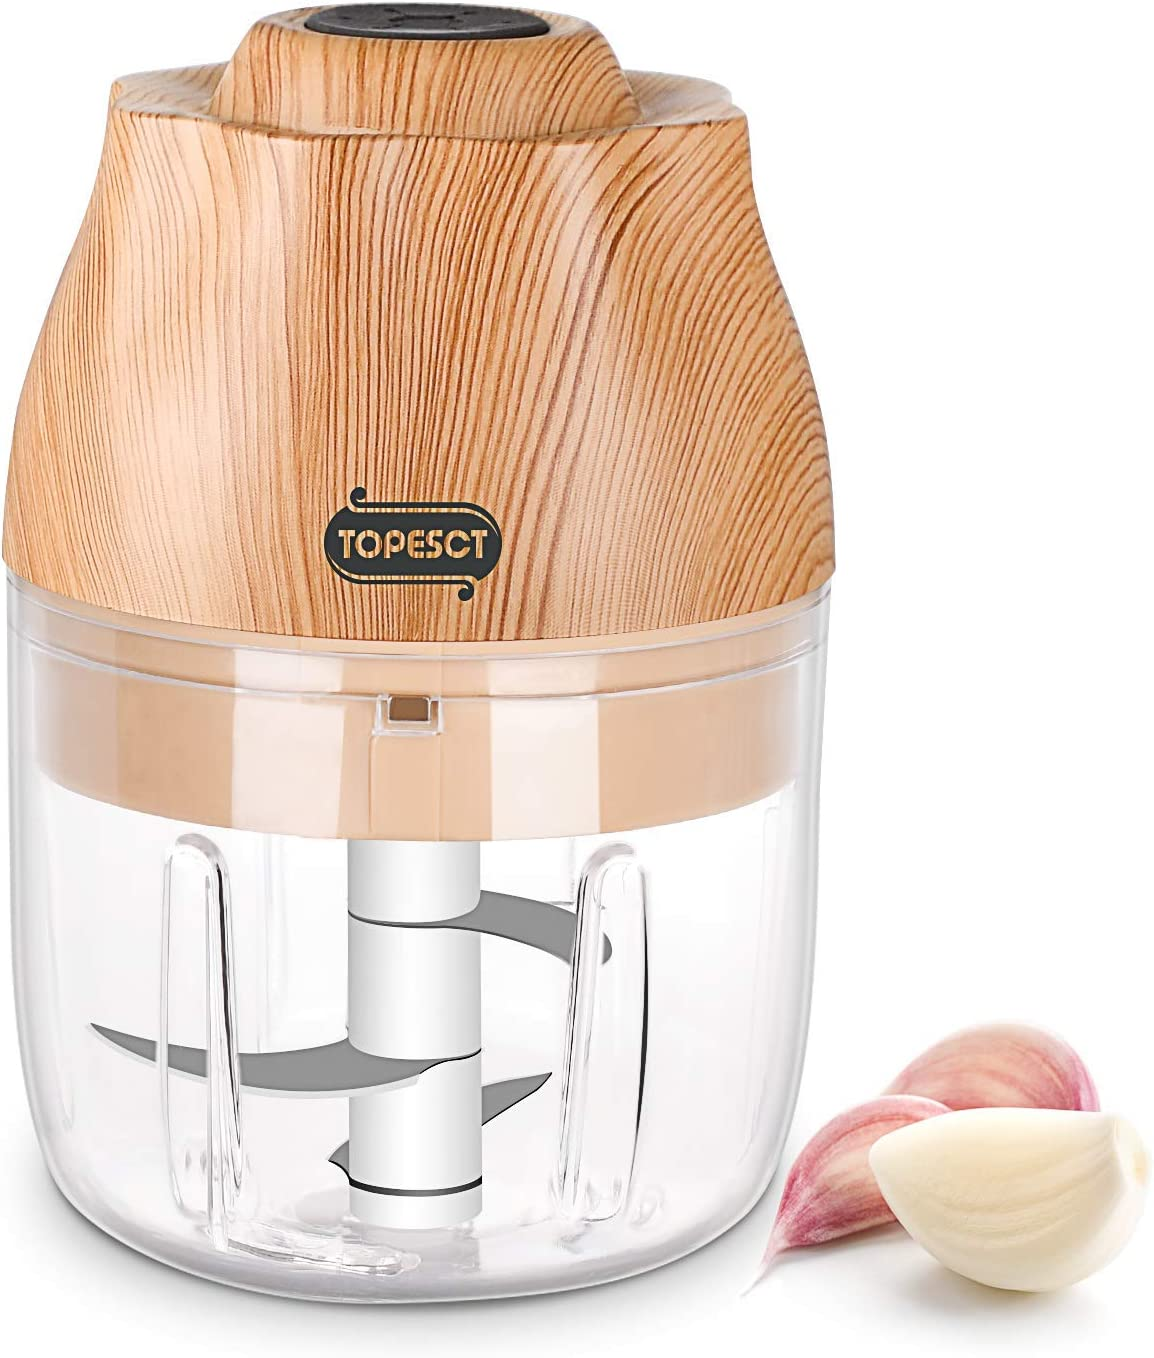 TOPESCT Mini Food Chopper Electric, Kitchen Food Processor and Blender, USB Charging Portable Vegetable Fruit Meat Garlic Onion Ginger Chopper with 3 Sharp Blades Grinder for Baby Food Salad- 250ML